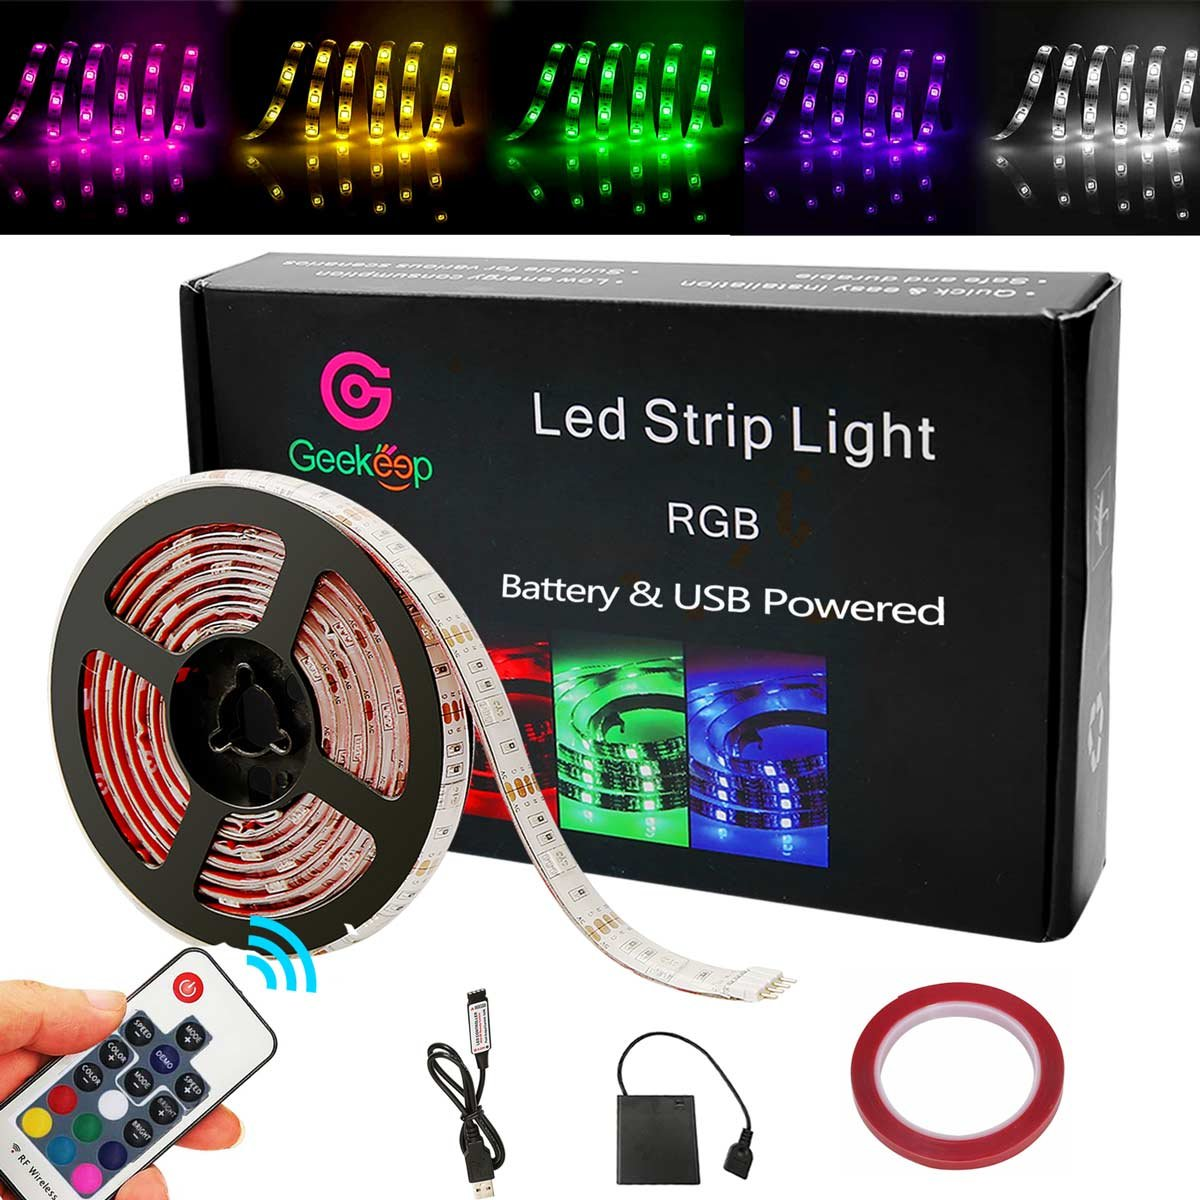 G GEEKEEP Battery Powered Led Strip Lights, Geekeep Waterproof RGB Led Strip Rope Lights with Remote,USB Cord and Bonus Roll Adhesive Tape (2m/6.56ft)